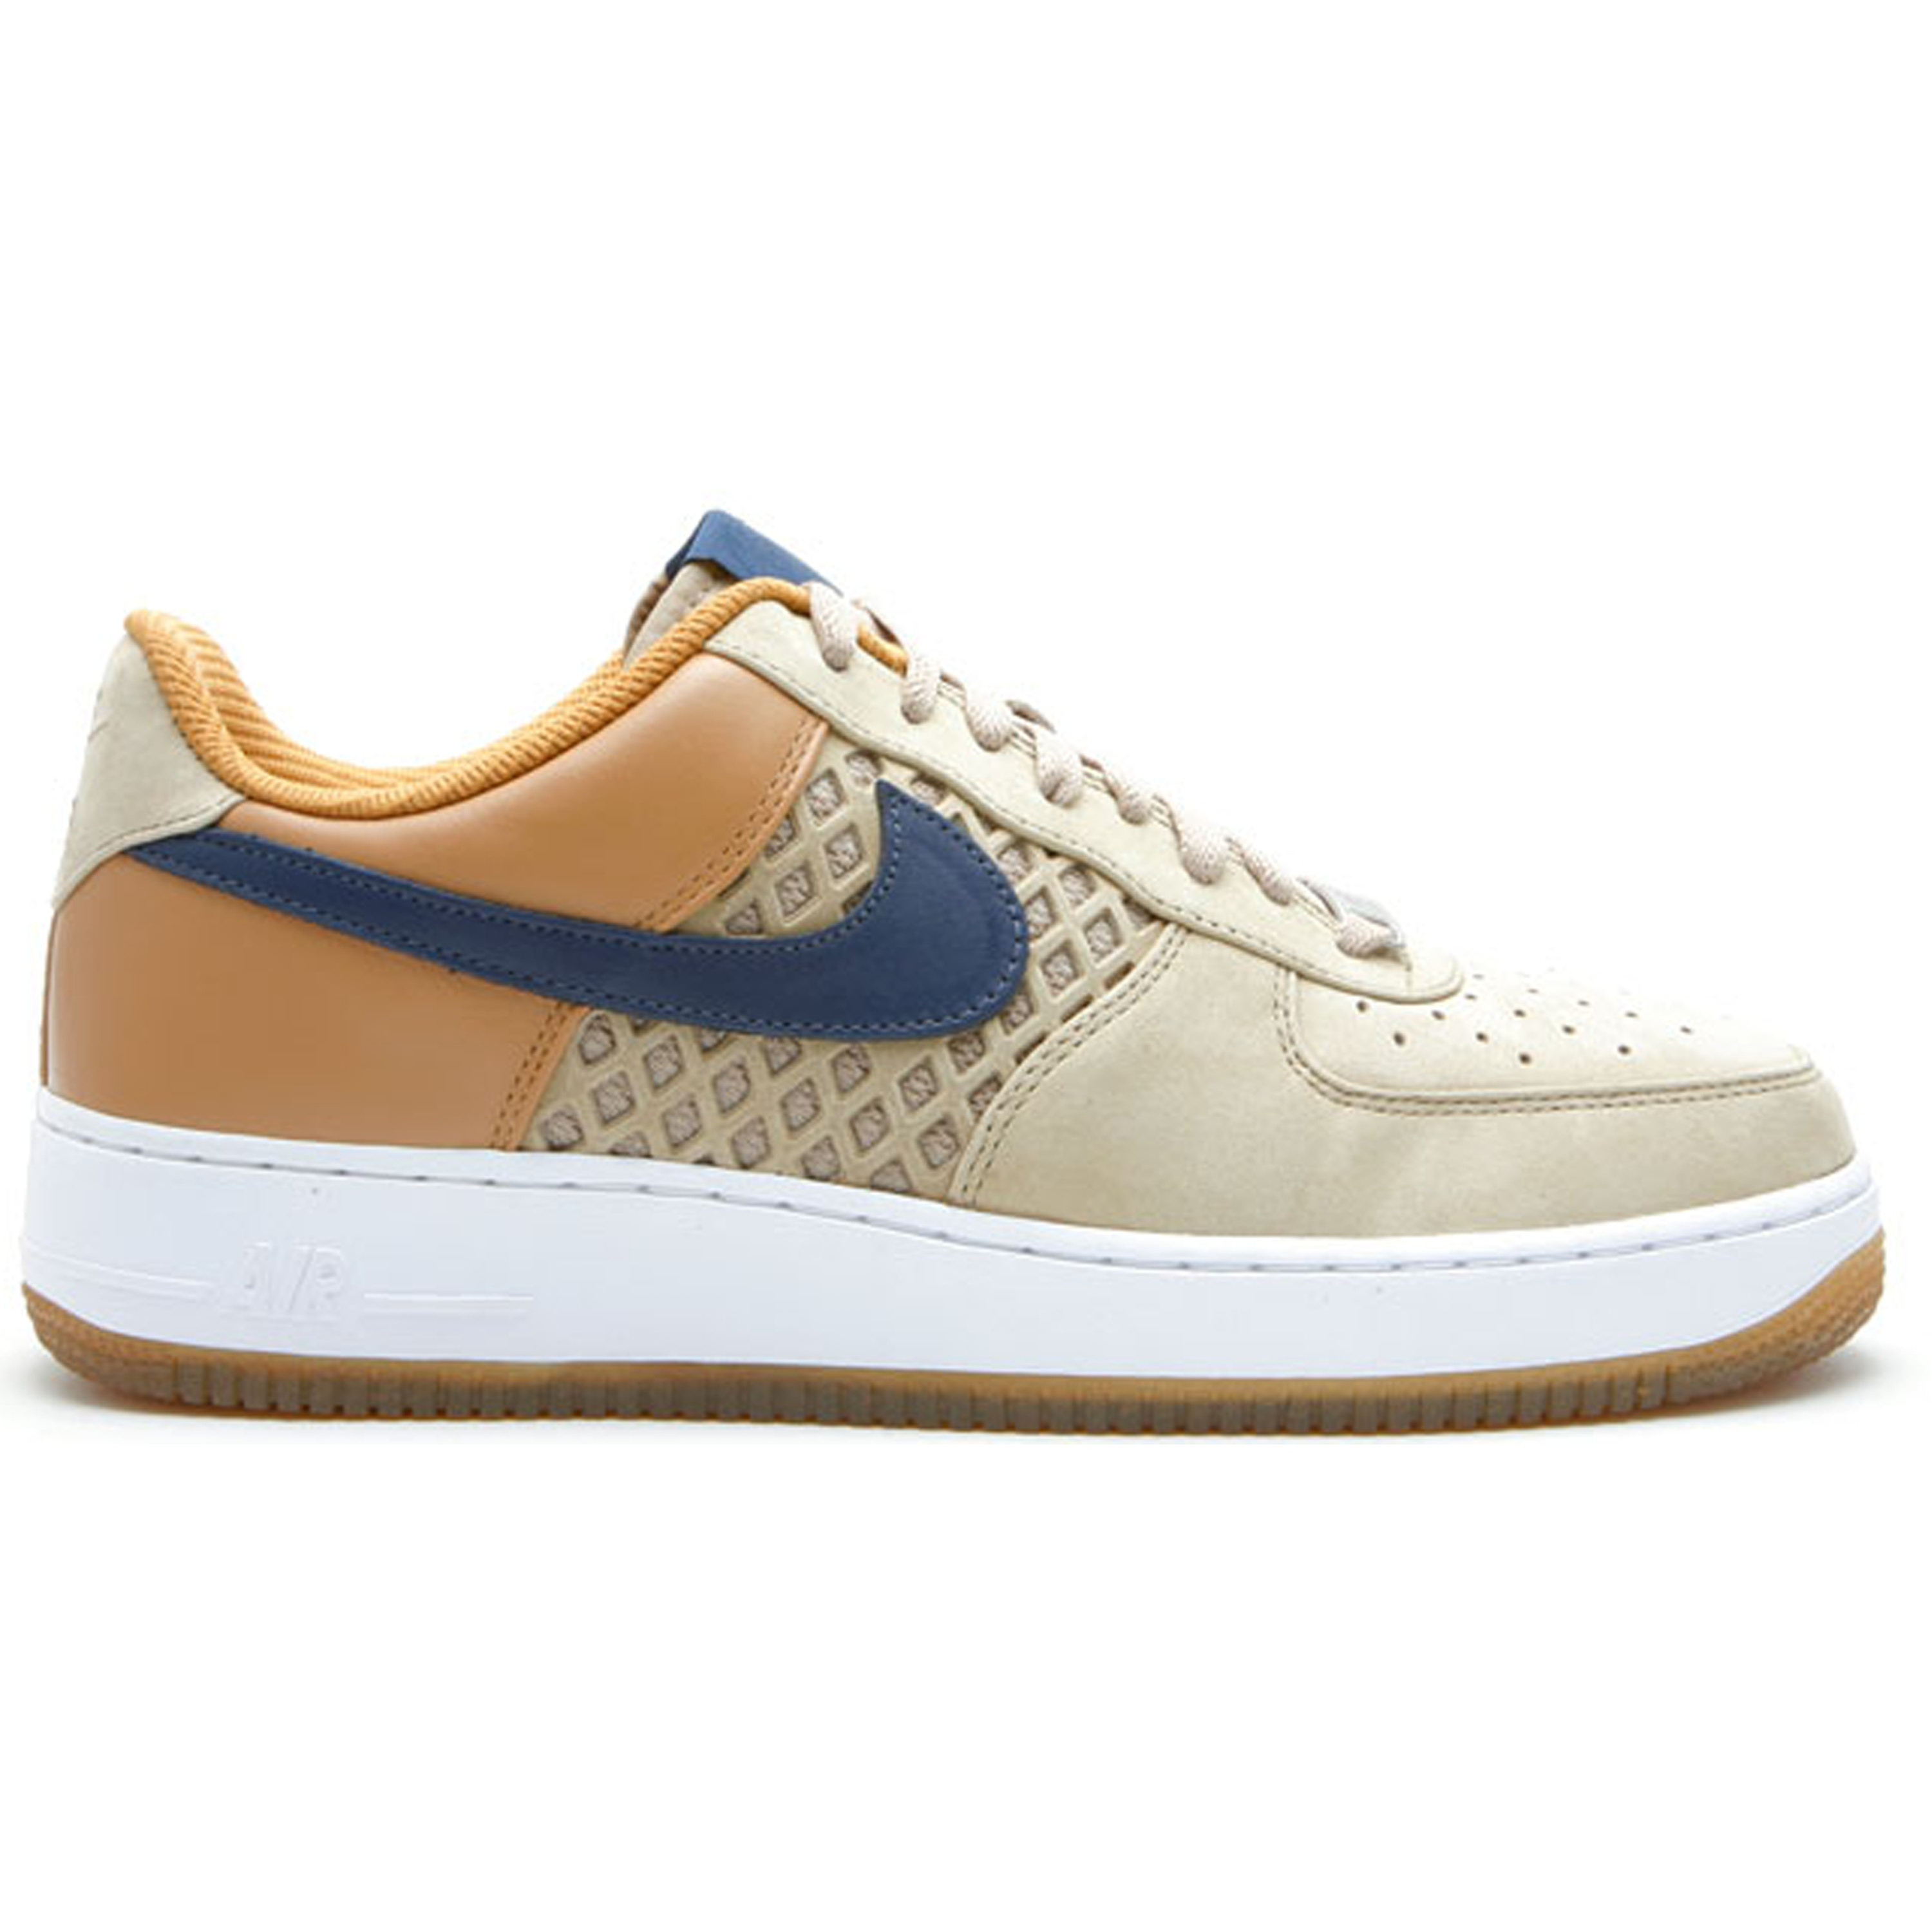 Nike Air Force 1 Low Birds Nest (318775-241)